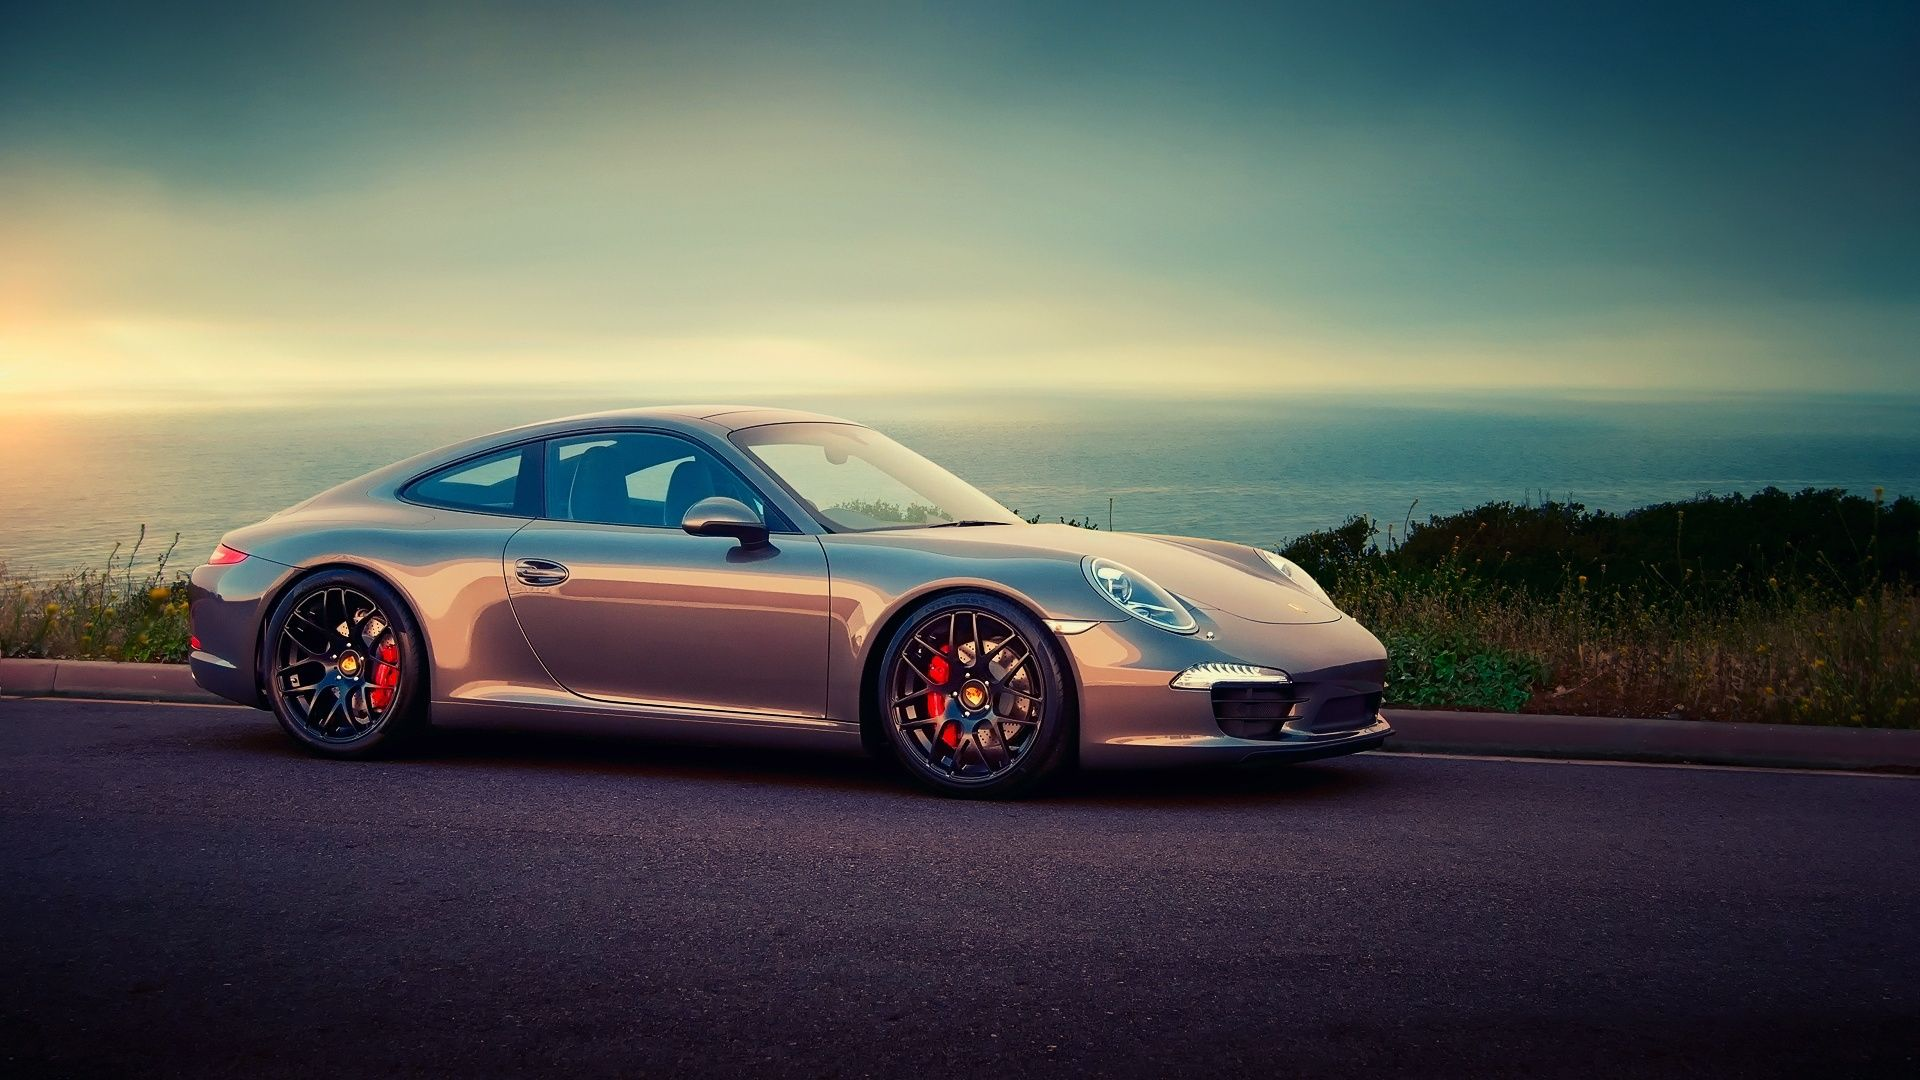 Porsche Wallpaper Widescreen Fy